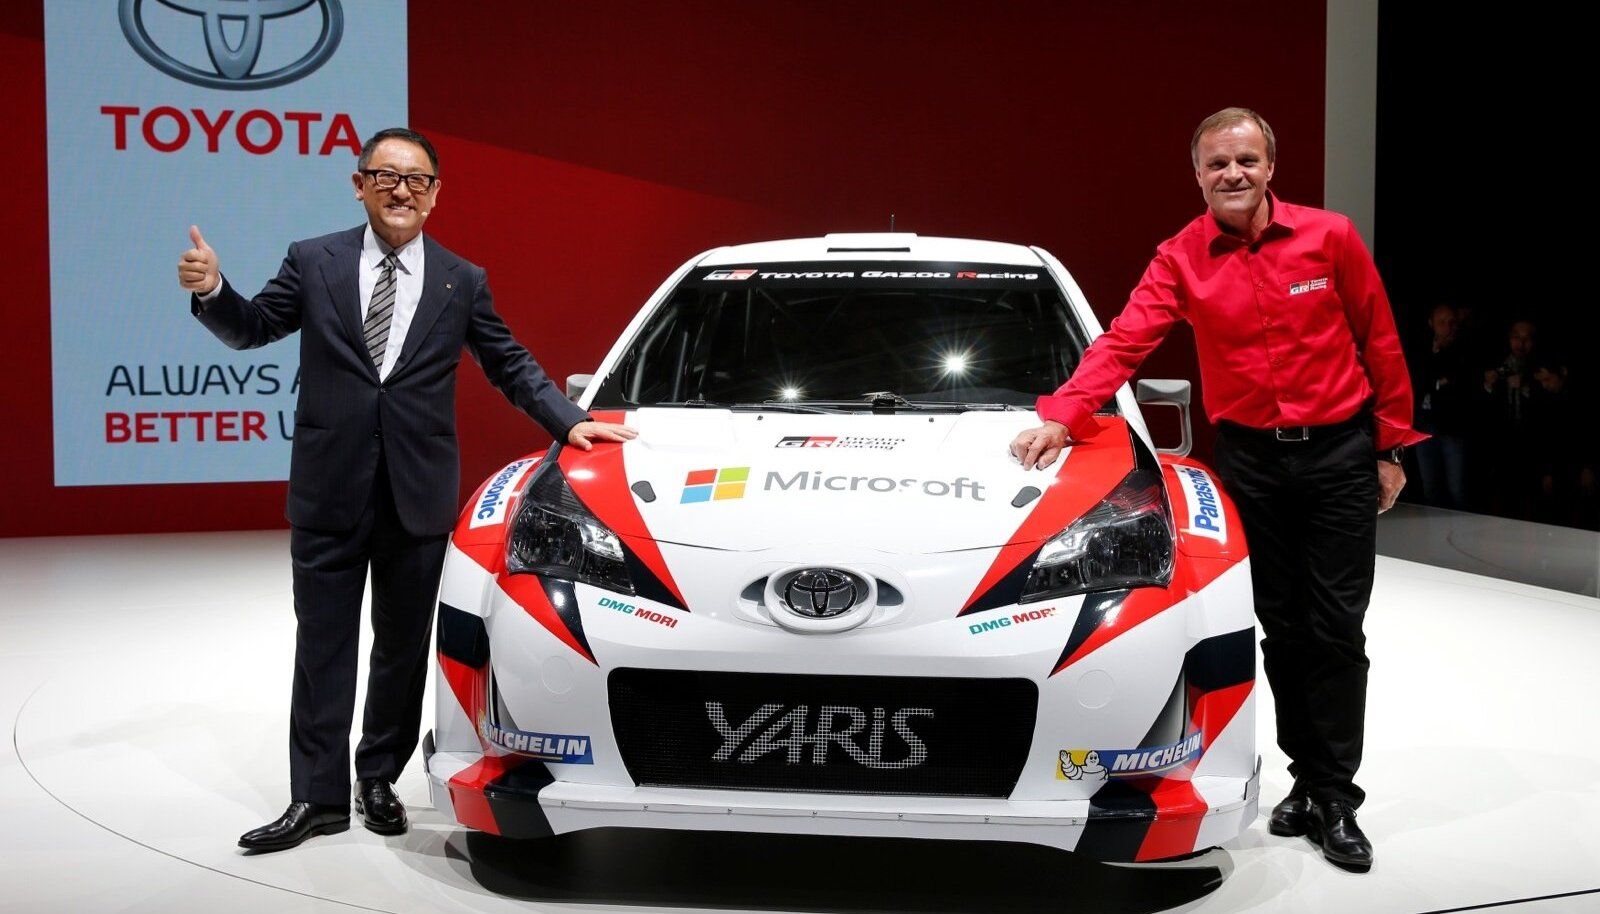 Akio Toyoda, President and CEO of Toyota Motor Corporation, and rally driver Tommi Makinen of Finland pose after a news conference on media day at the Paris auto show, in Paris